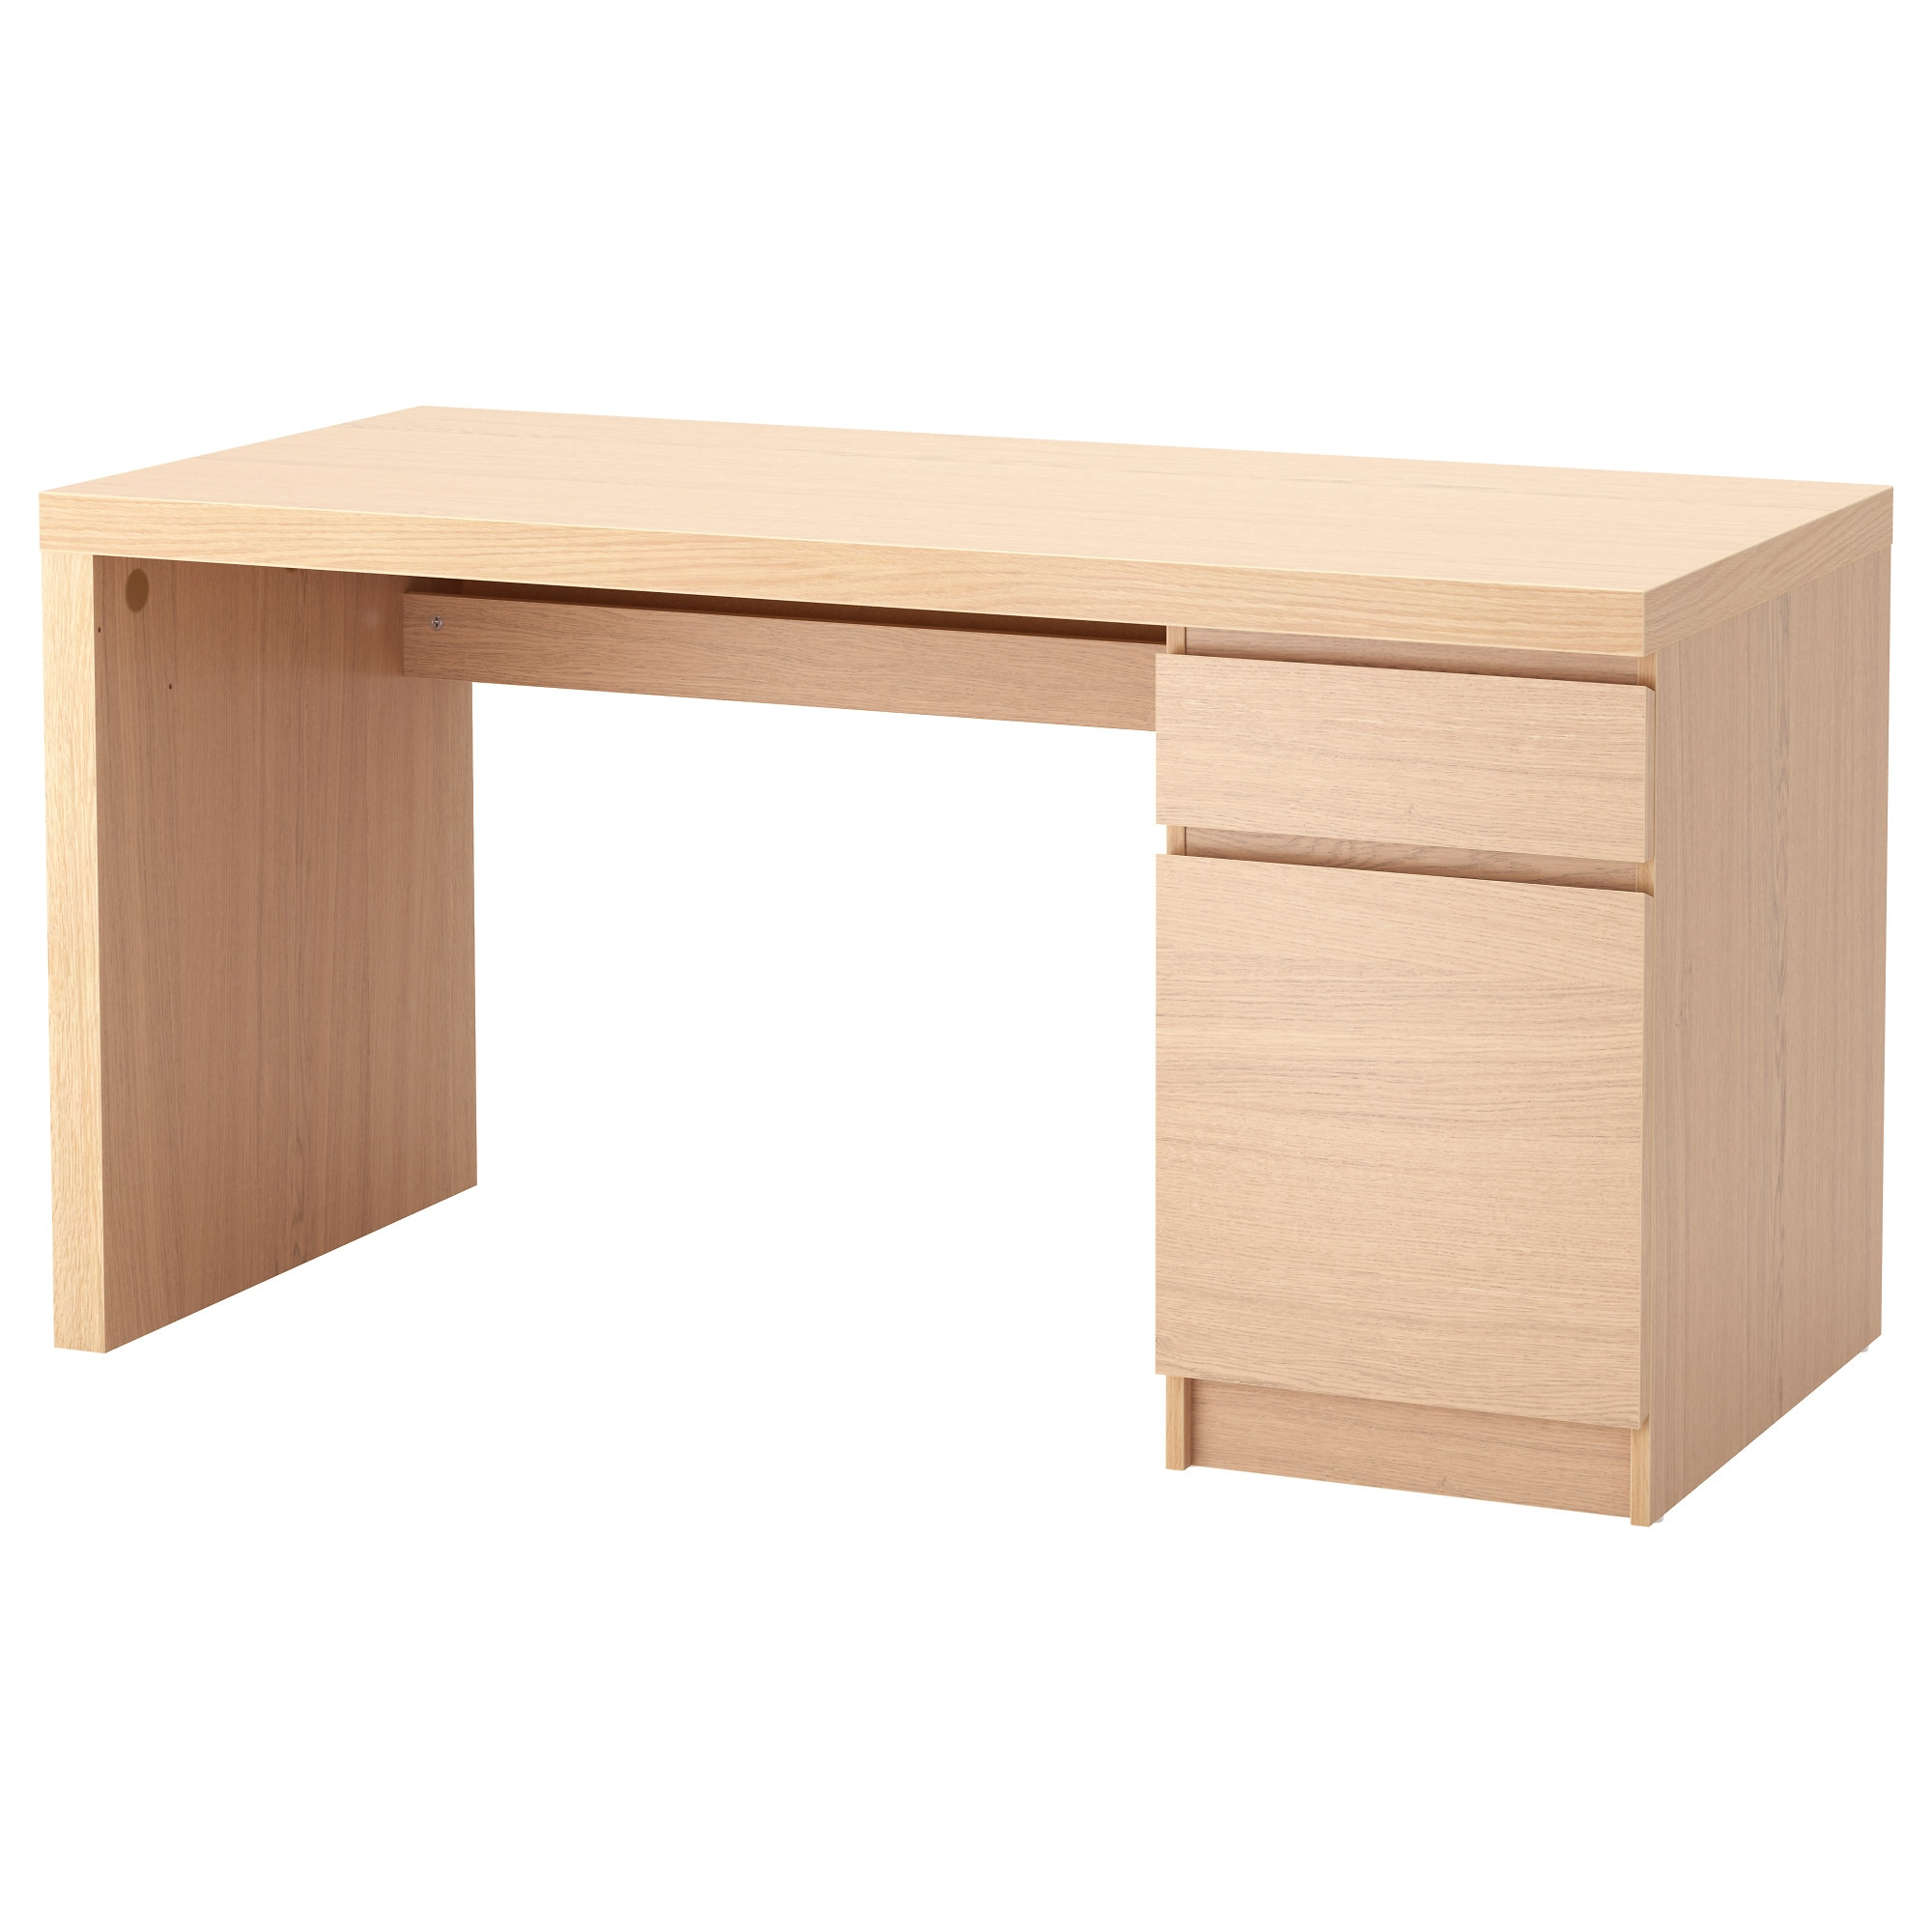 MALM Desk white stained oak veneer IKEA